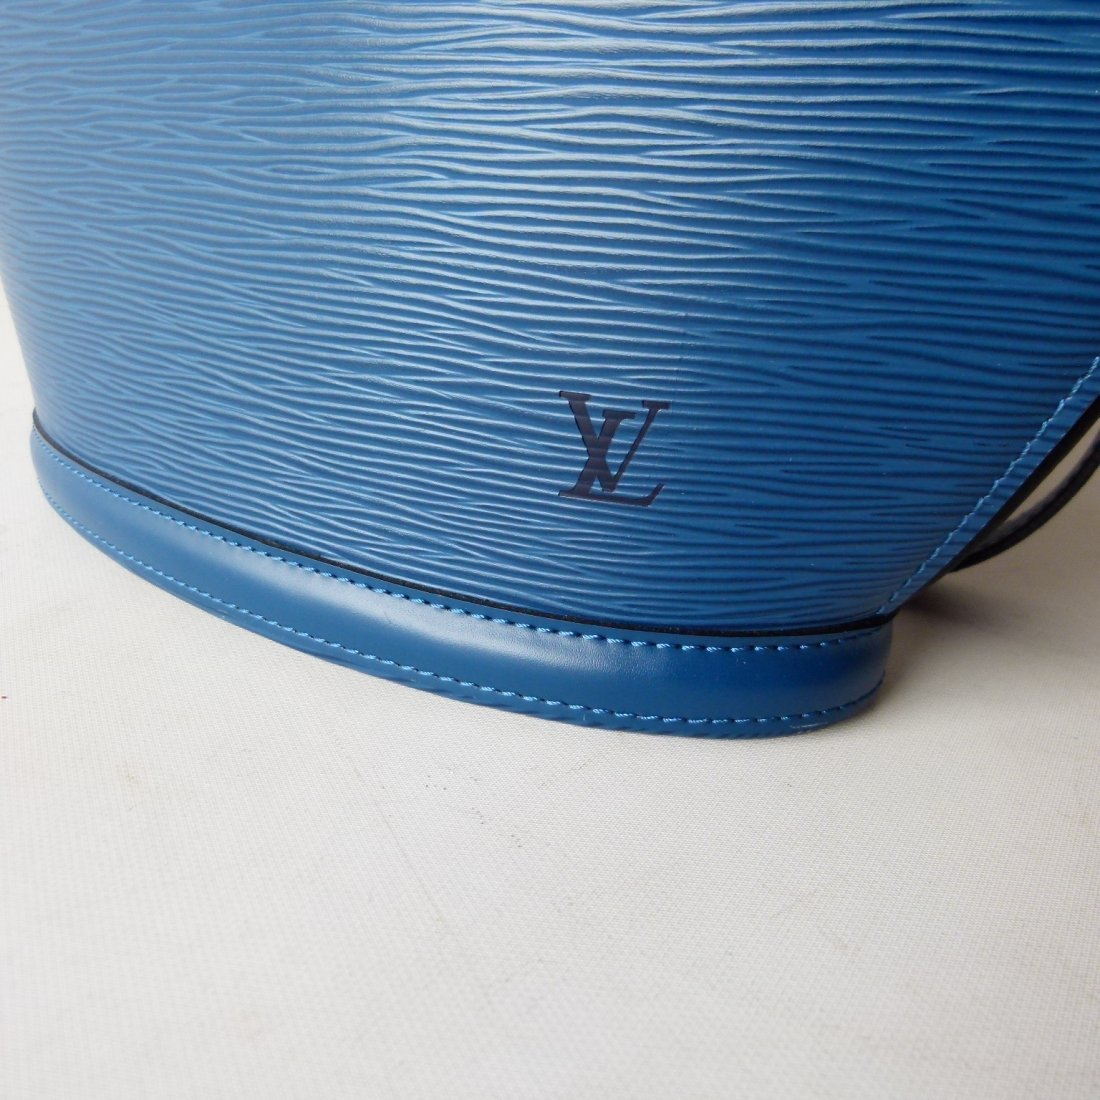 LOUIS VUITTON ST. JACQUES BLUE PURSE - 9